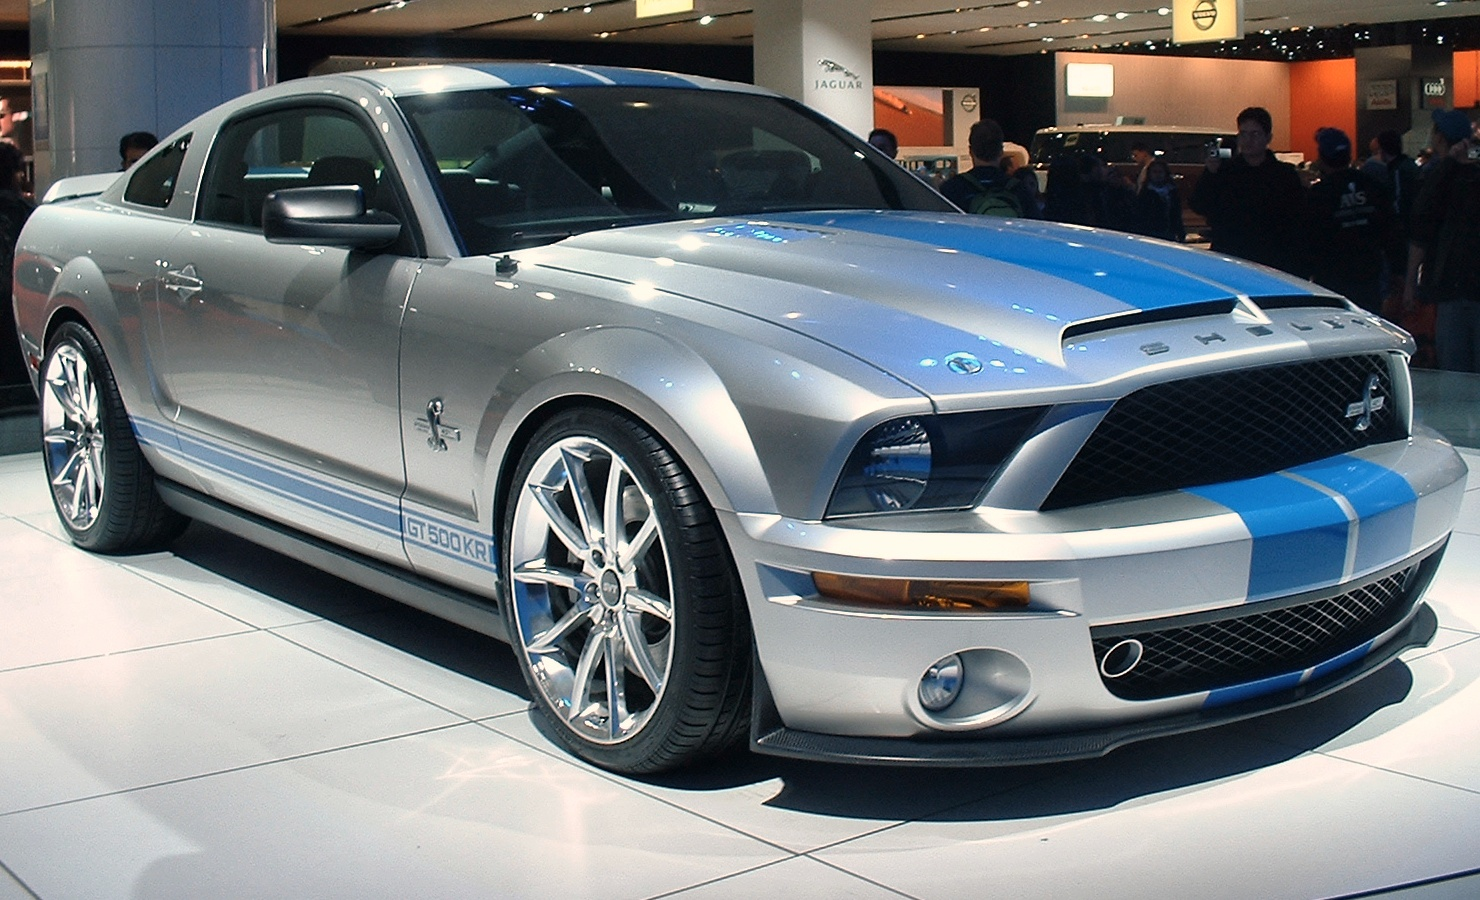 Ford Shelby GT500 #5